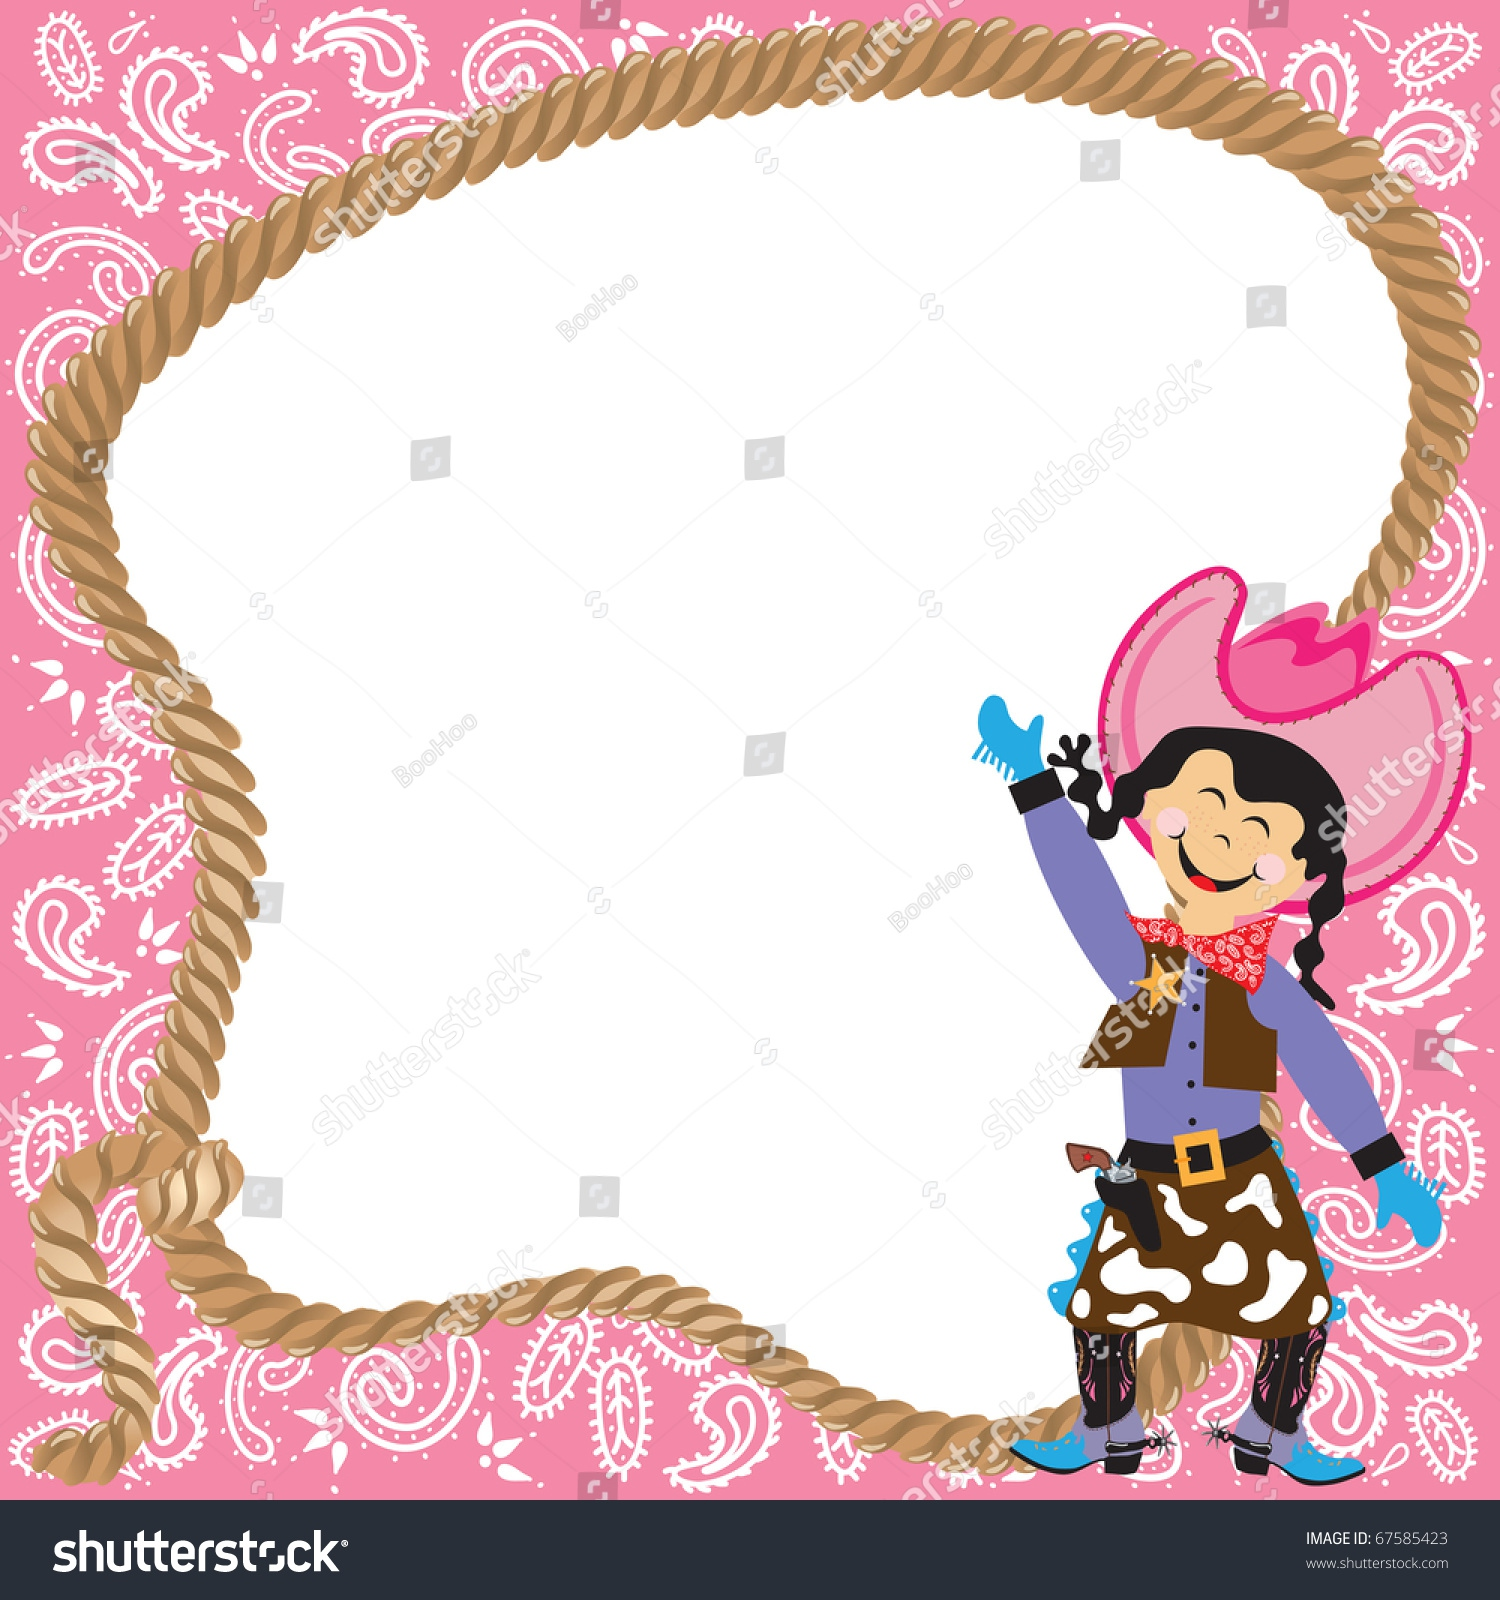 birthday party borders for invitations ; cowgirl-birthday-invitations-fresh-birthday-party-borders-for-invitations-all-the-best-invitation-of-cowgirl-birthday-invitations